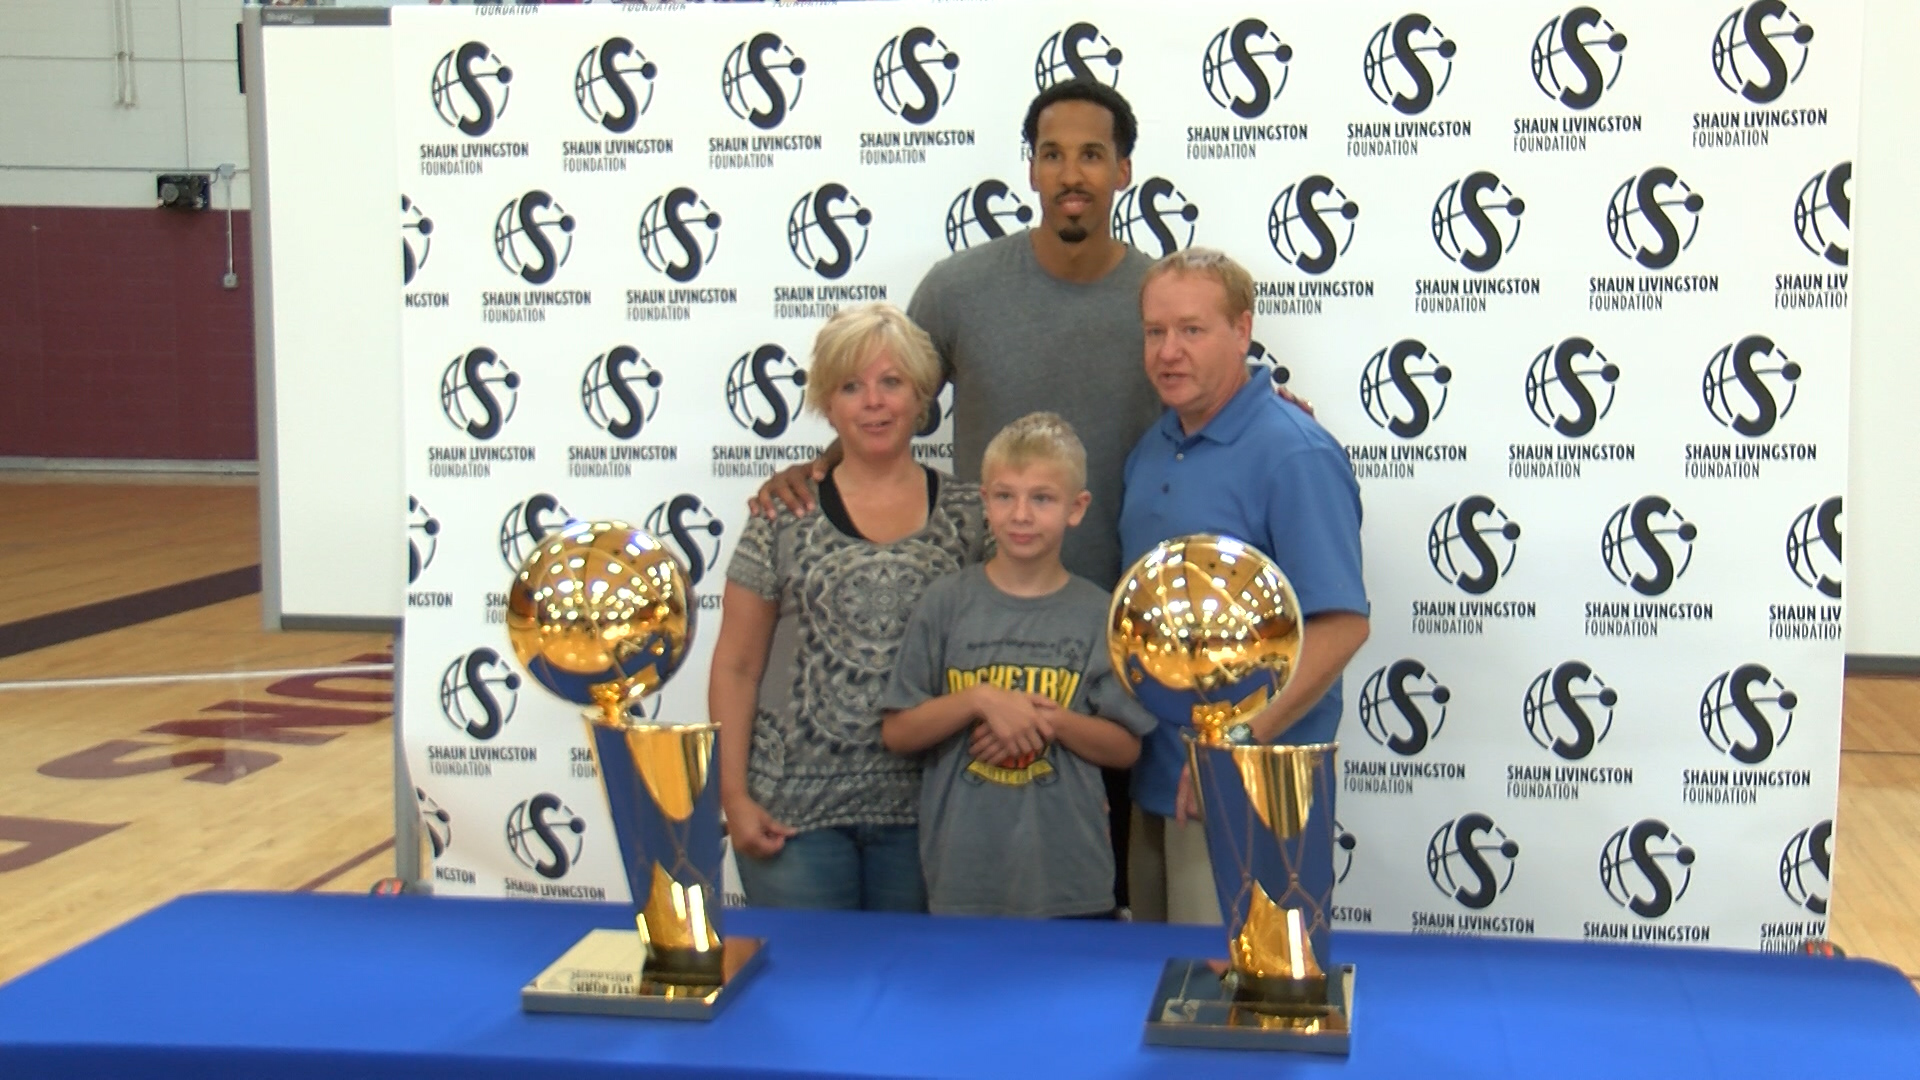 Shaun with fans and trophies_1499472375650.jpg